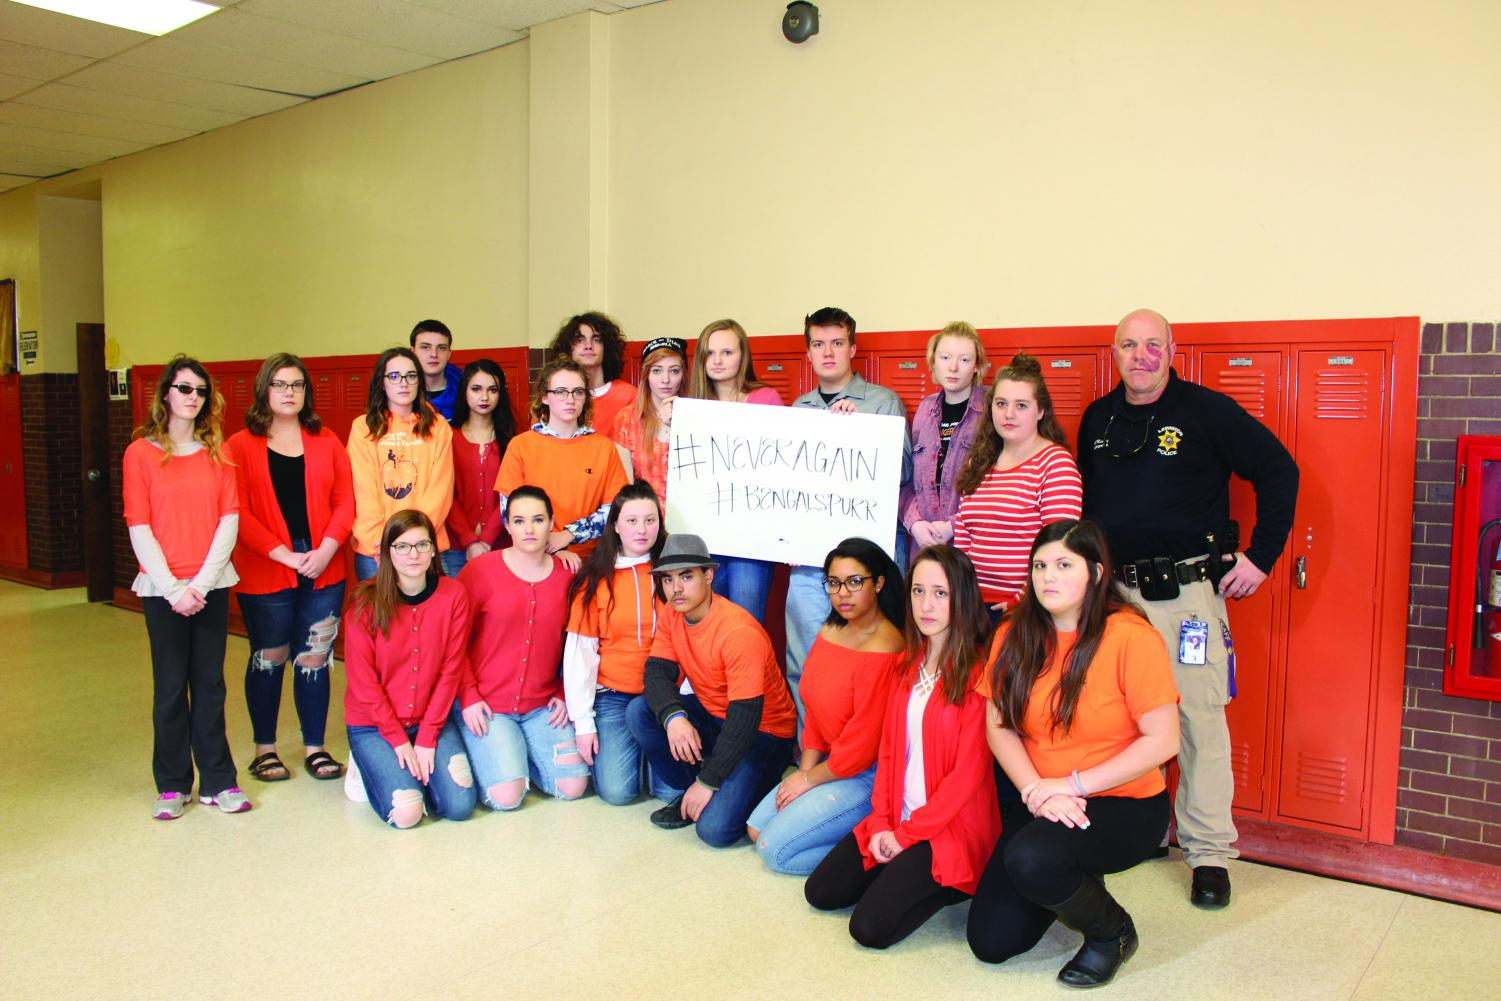 The current staff of The Bengal's Purr at Lewiston High School, with LHS student resource officer, Robert Massey.